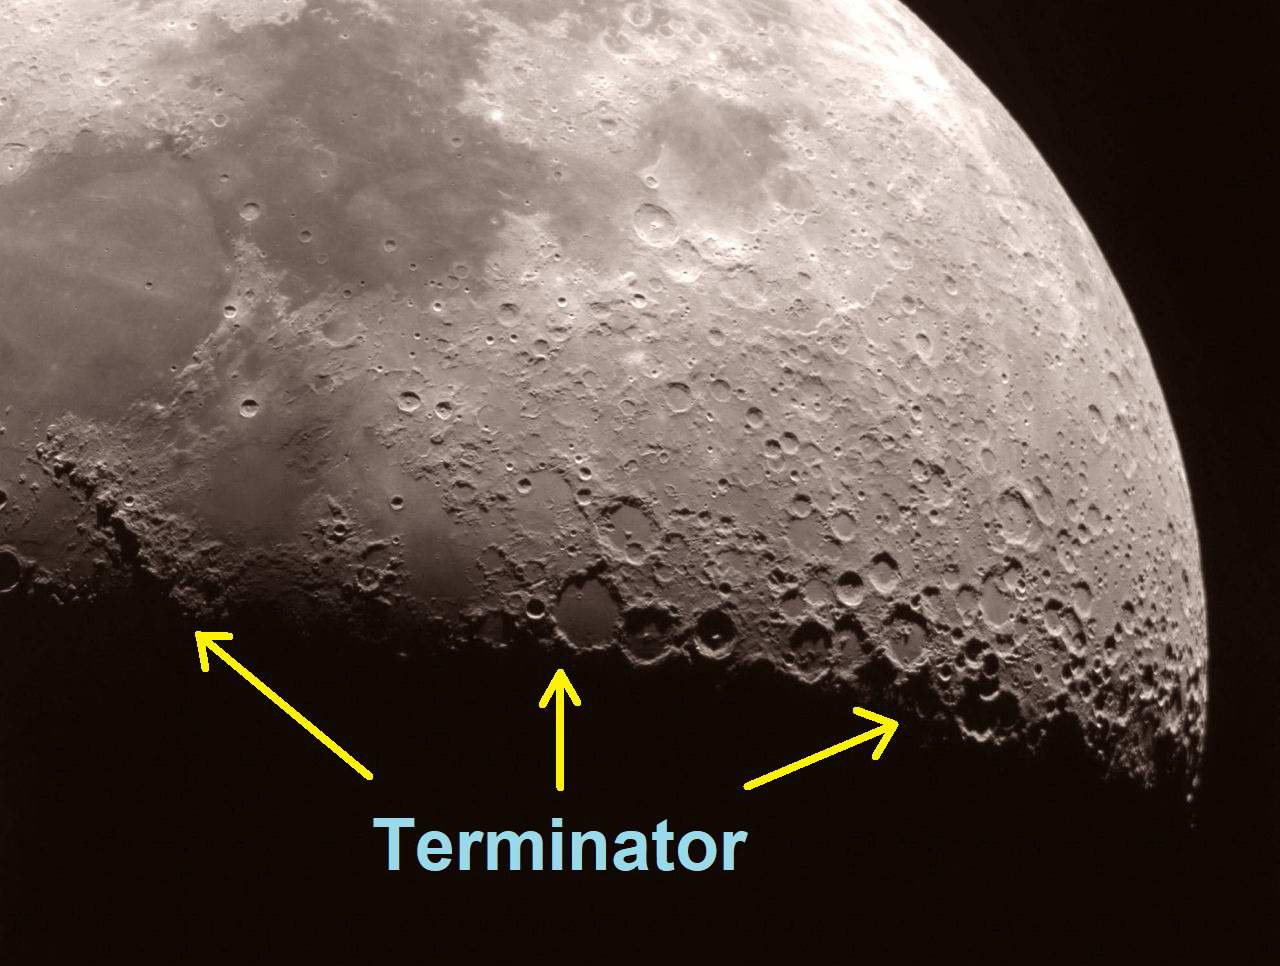 Moon Terminator. Milwaukee Astronomical Society image